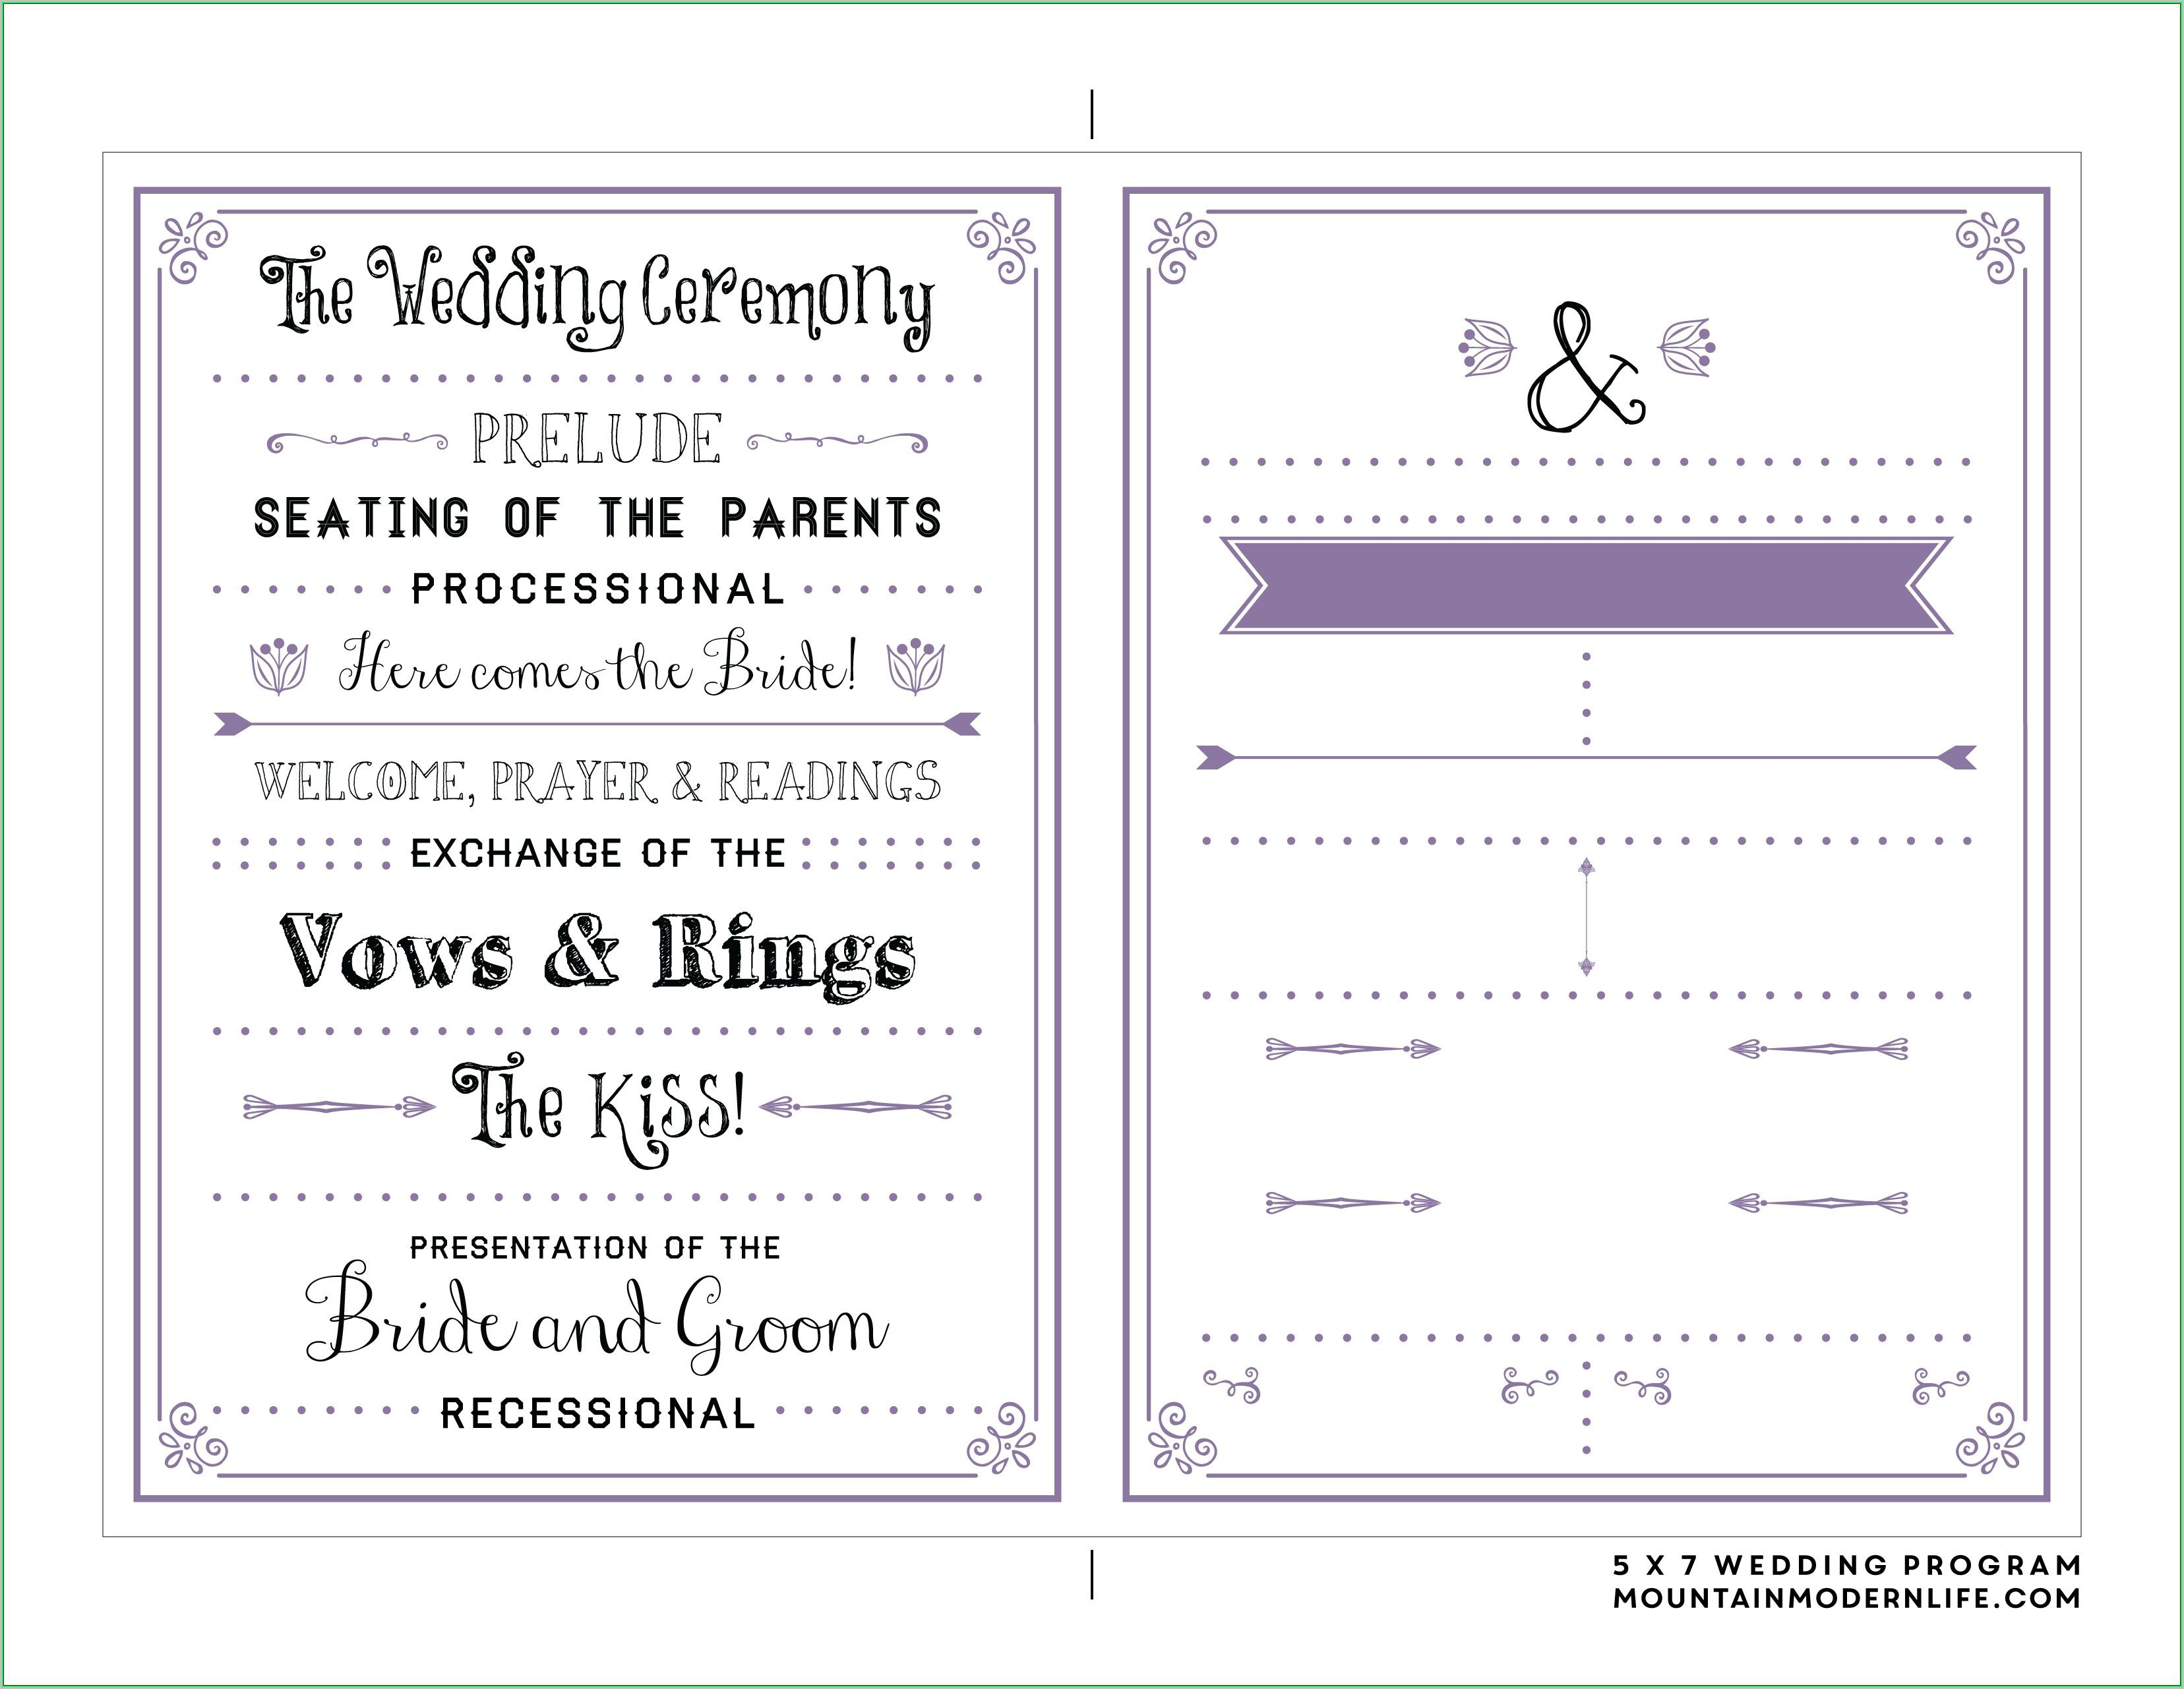 009 Stunning Free Downloadable Wedding Program Template High Definition  Templates That Can Be Printed Printable Fall ReceptionFull